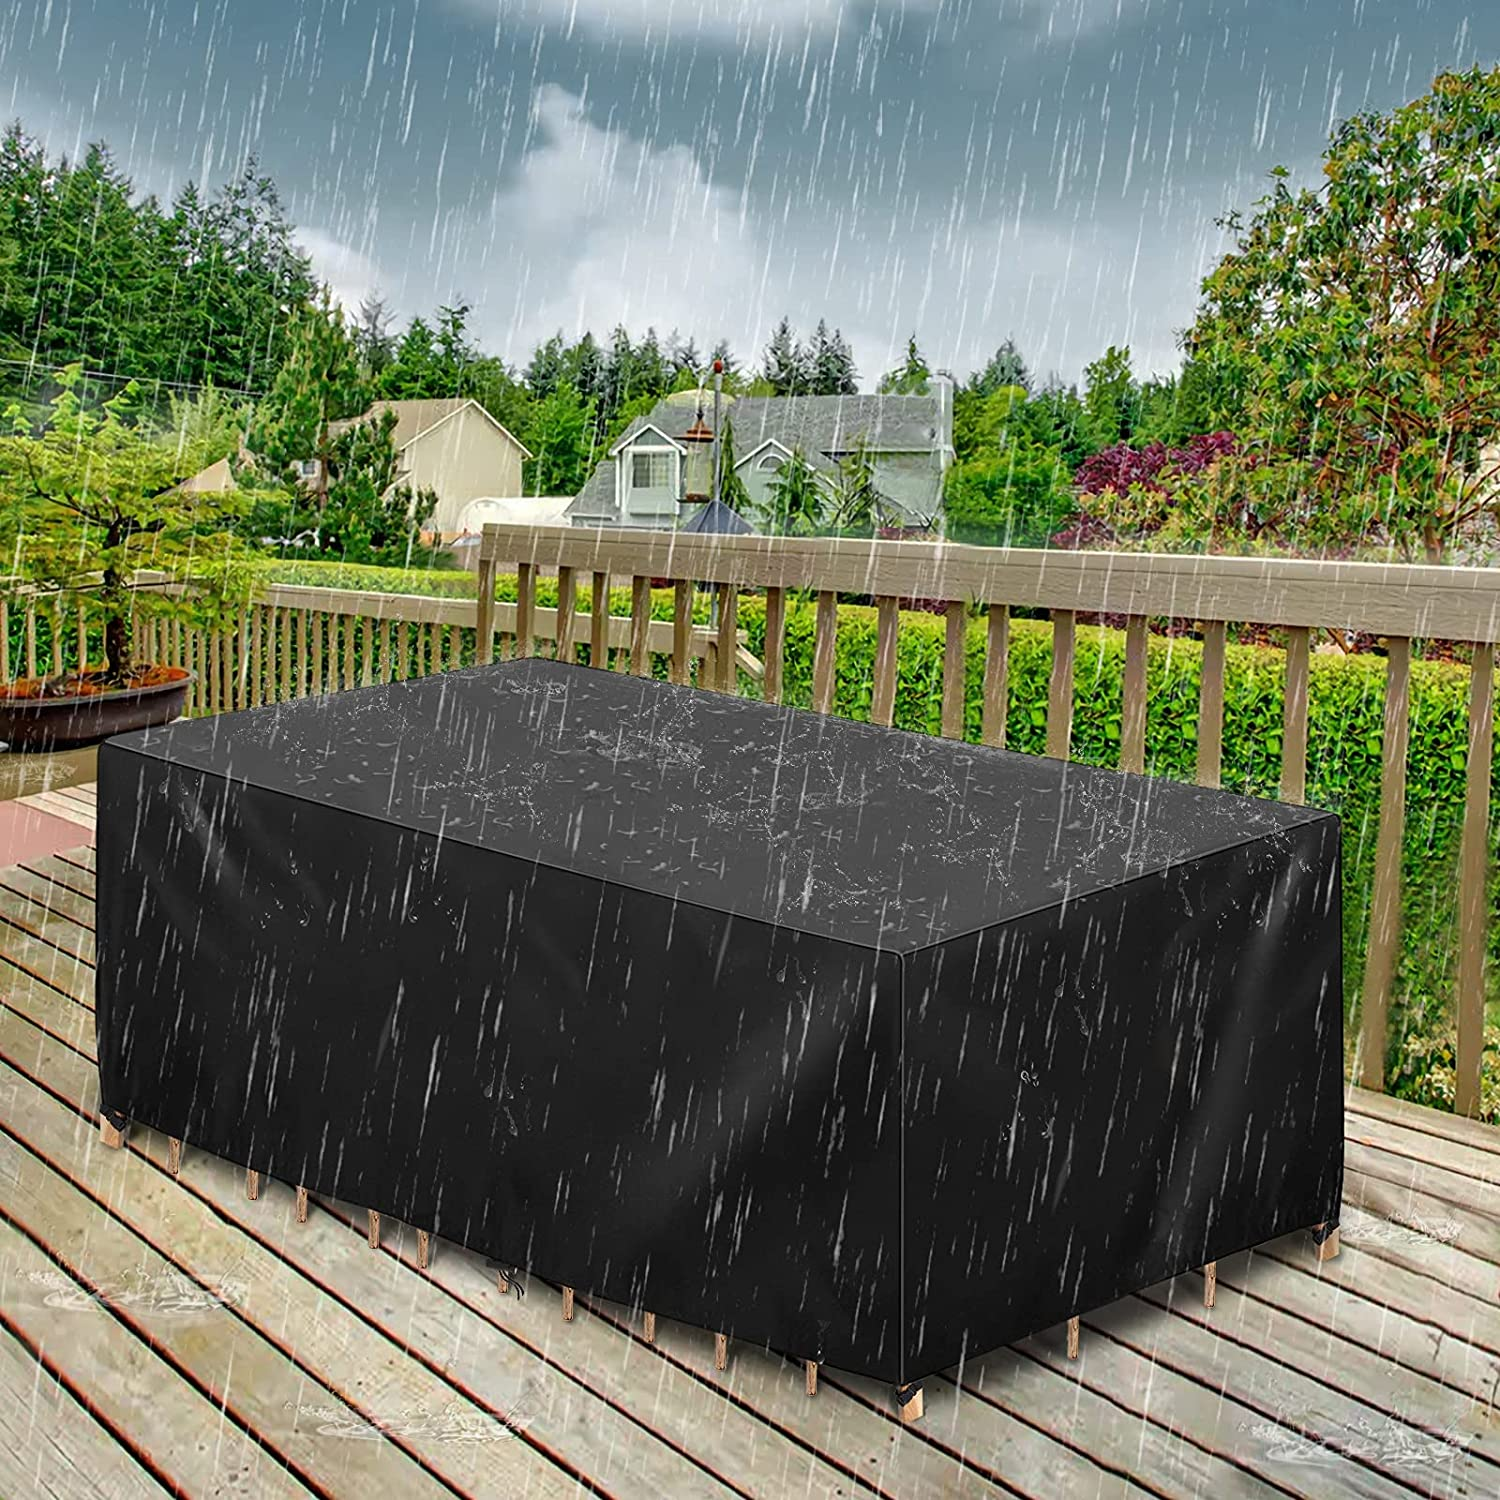 GEMITTO Outdoor Patio Furniture Cover, 420D Heavy Duty Waterproof Patio Table Covers, Wind Dust Proof Anti-UV Durable Protective Covers for Bad Weather Rain Winter Snow(74.8x46x24 inch) : Patio, Lawn & Garden